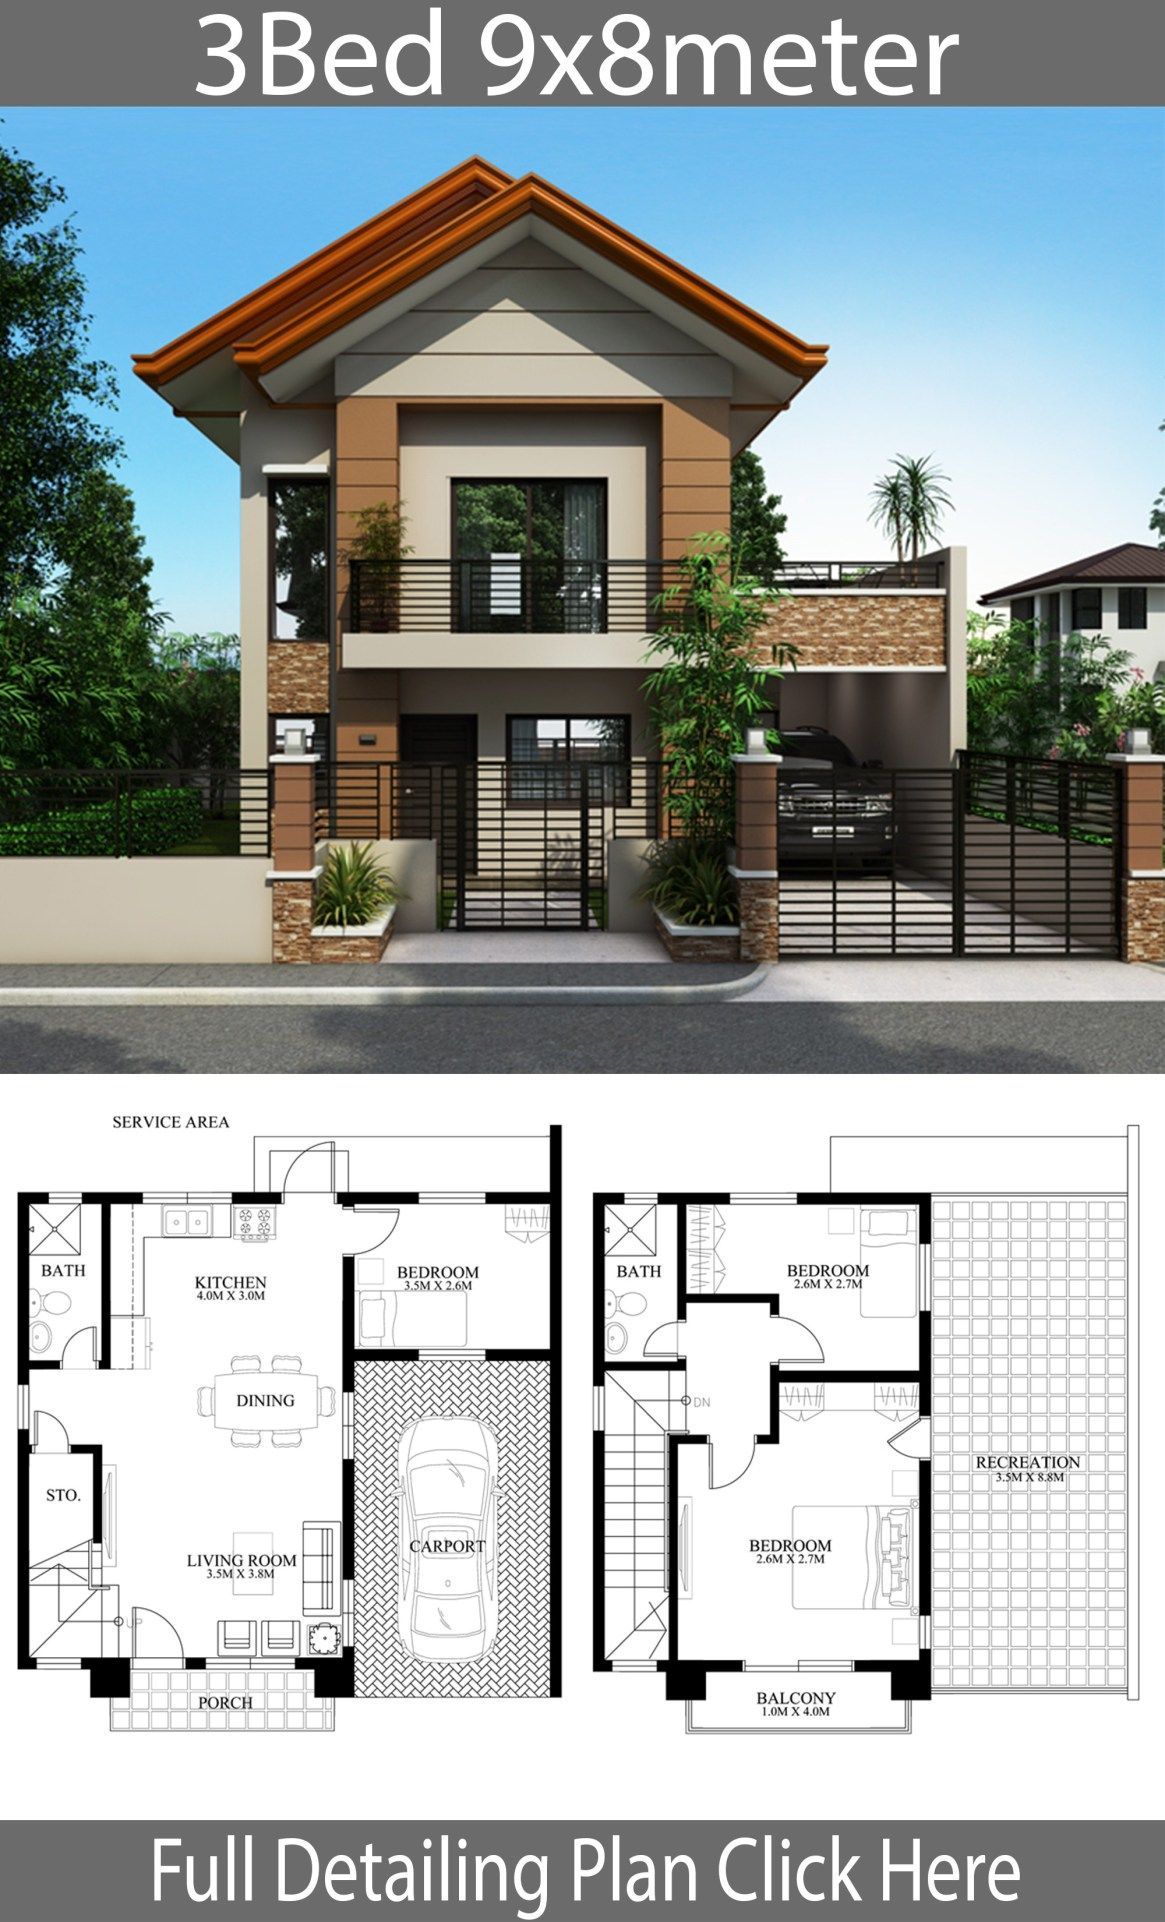 Home Design Plan 9x8m With 3 Bedrooms Home Design With Plansearch Philippines House Design 2 Storey House Design Bungalow House Design